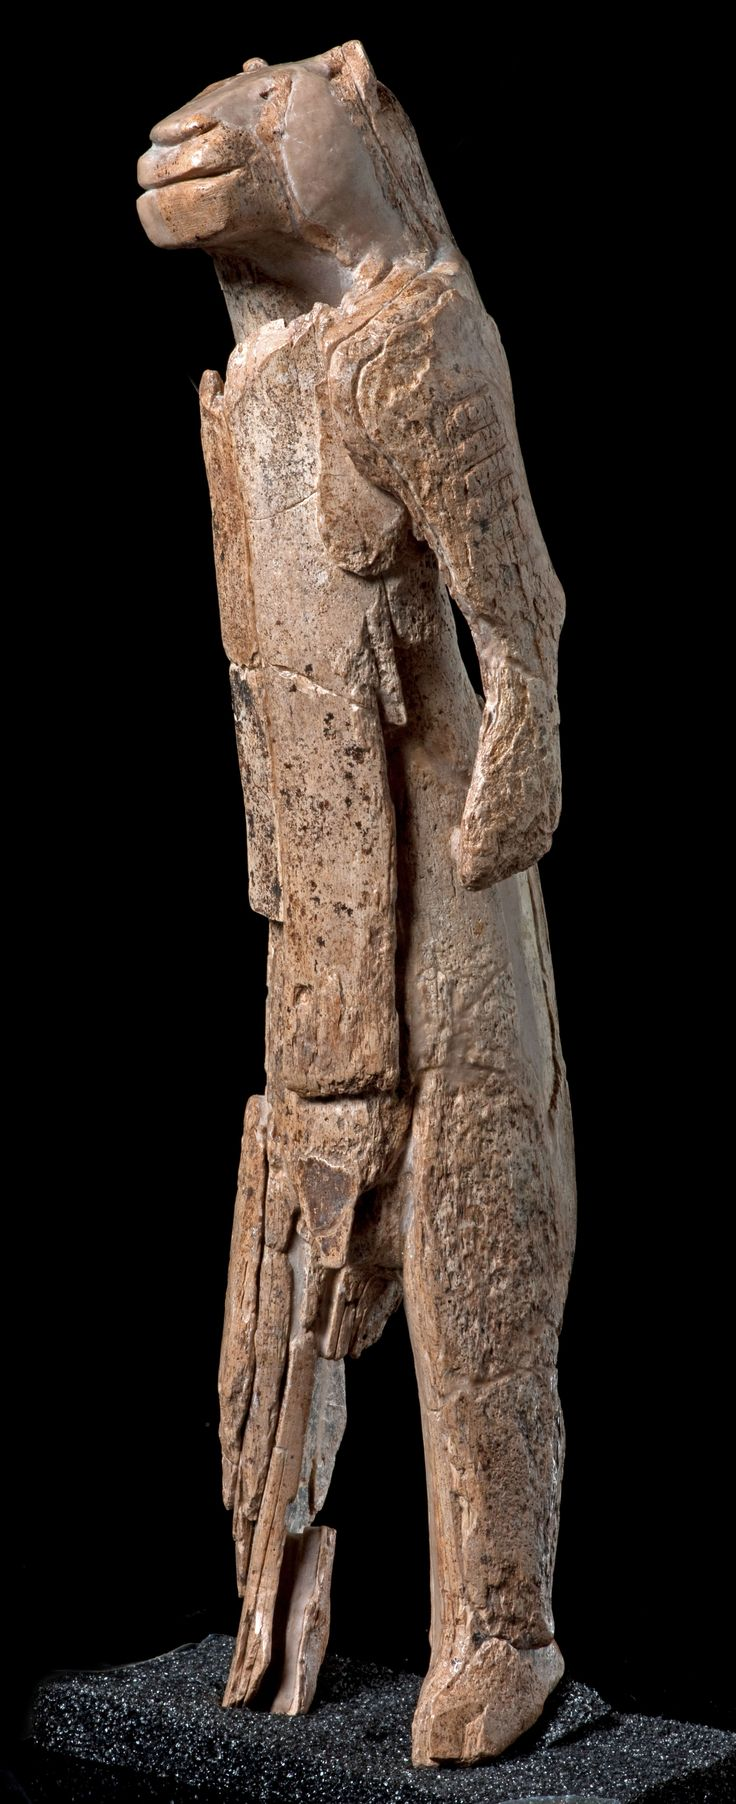 http://donsmaps.com/lionlady.htmlLoewenmensch, Löwenmensch, formerly often called Lowenfrau, the Lion Lady Venus - carved from mammoth ivory, it is 30 cm high and 6 cm in diameter. It was found in the cave of Hohlenstein-Stadel in the Valley of Lone, Baden-Wurttemberg (Germany), in 1931, dated as Aurignacian, in a level recently dated to 40 000 BP, making it the oldest sculpture known.